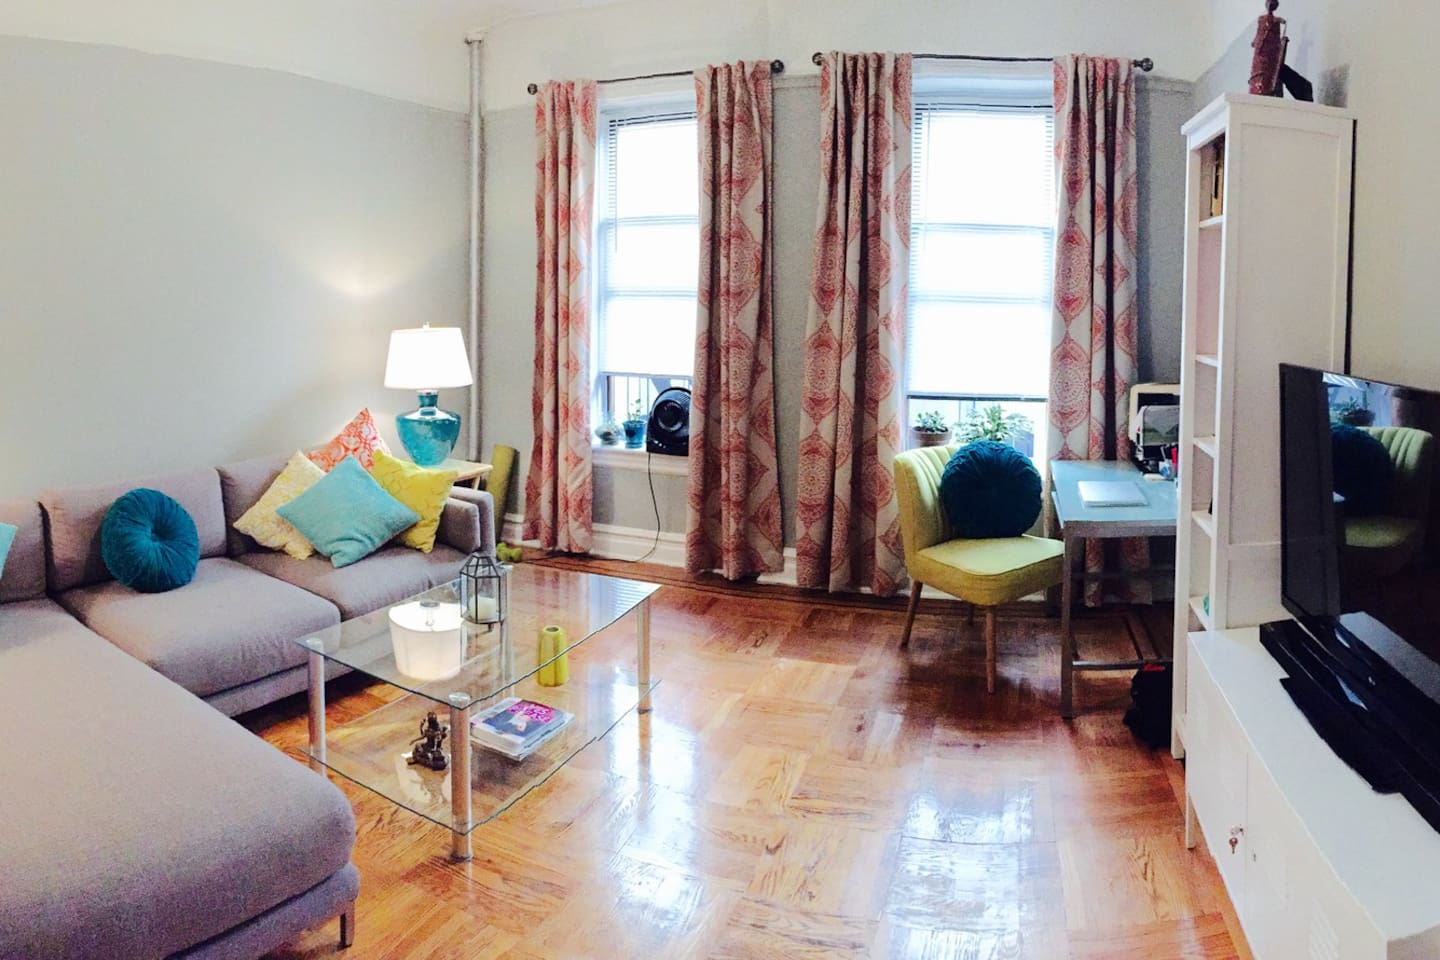 Panoramic of the living room with art, comfortable sofa and lovely natural light